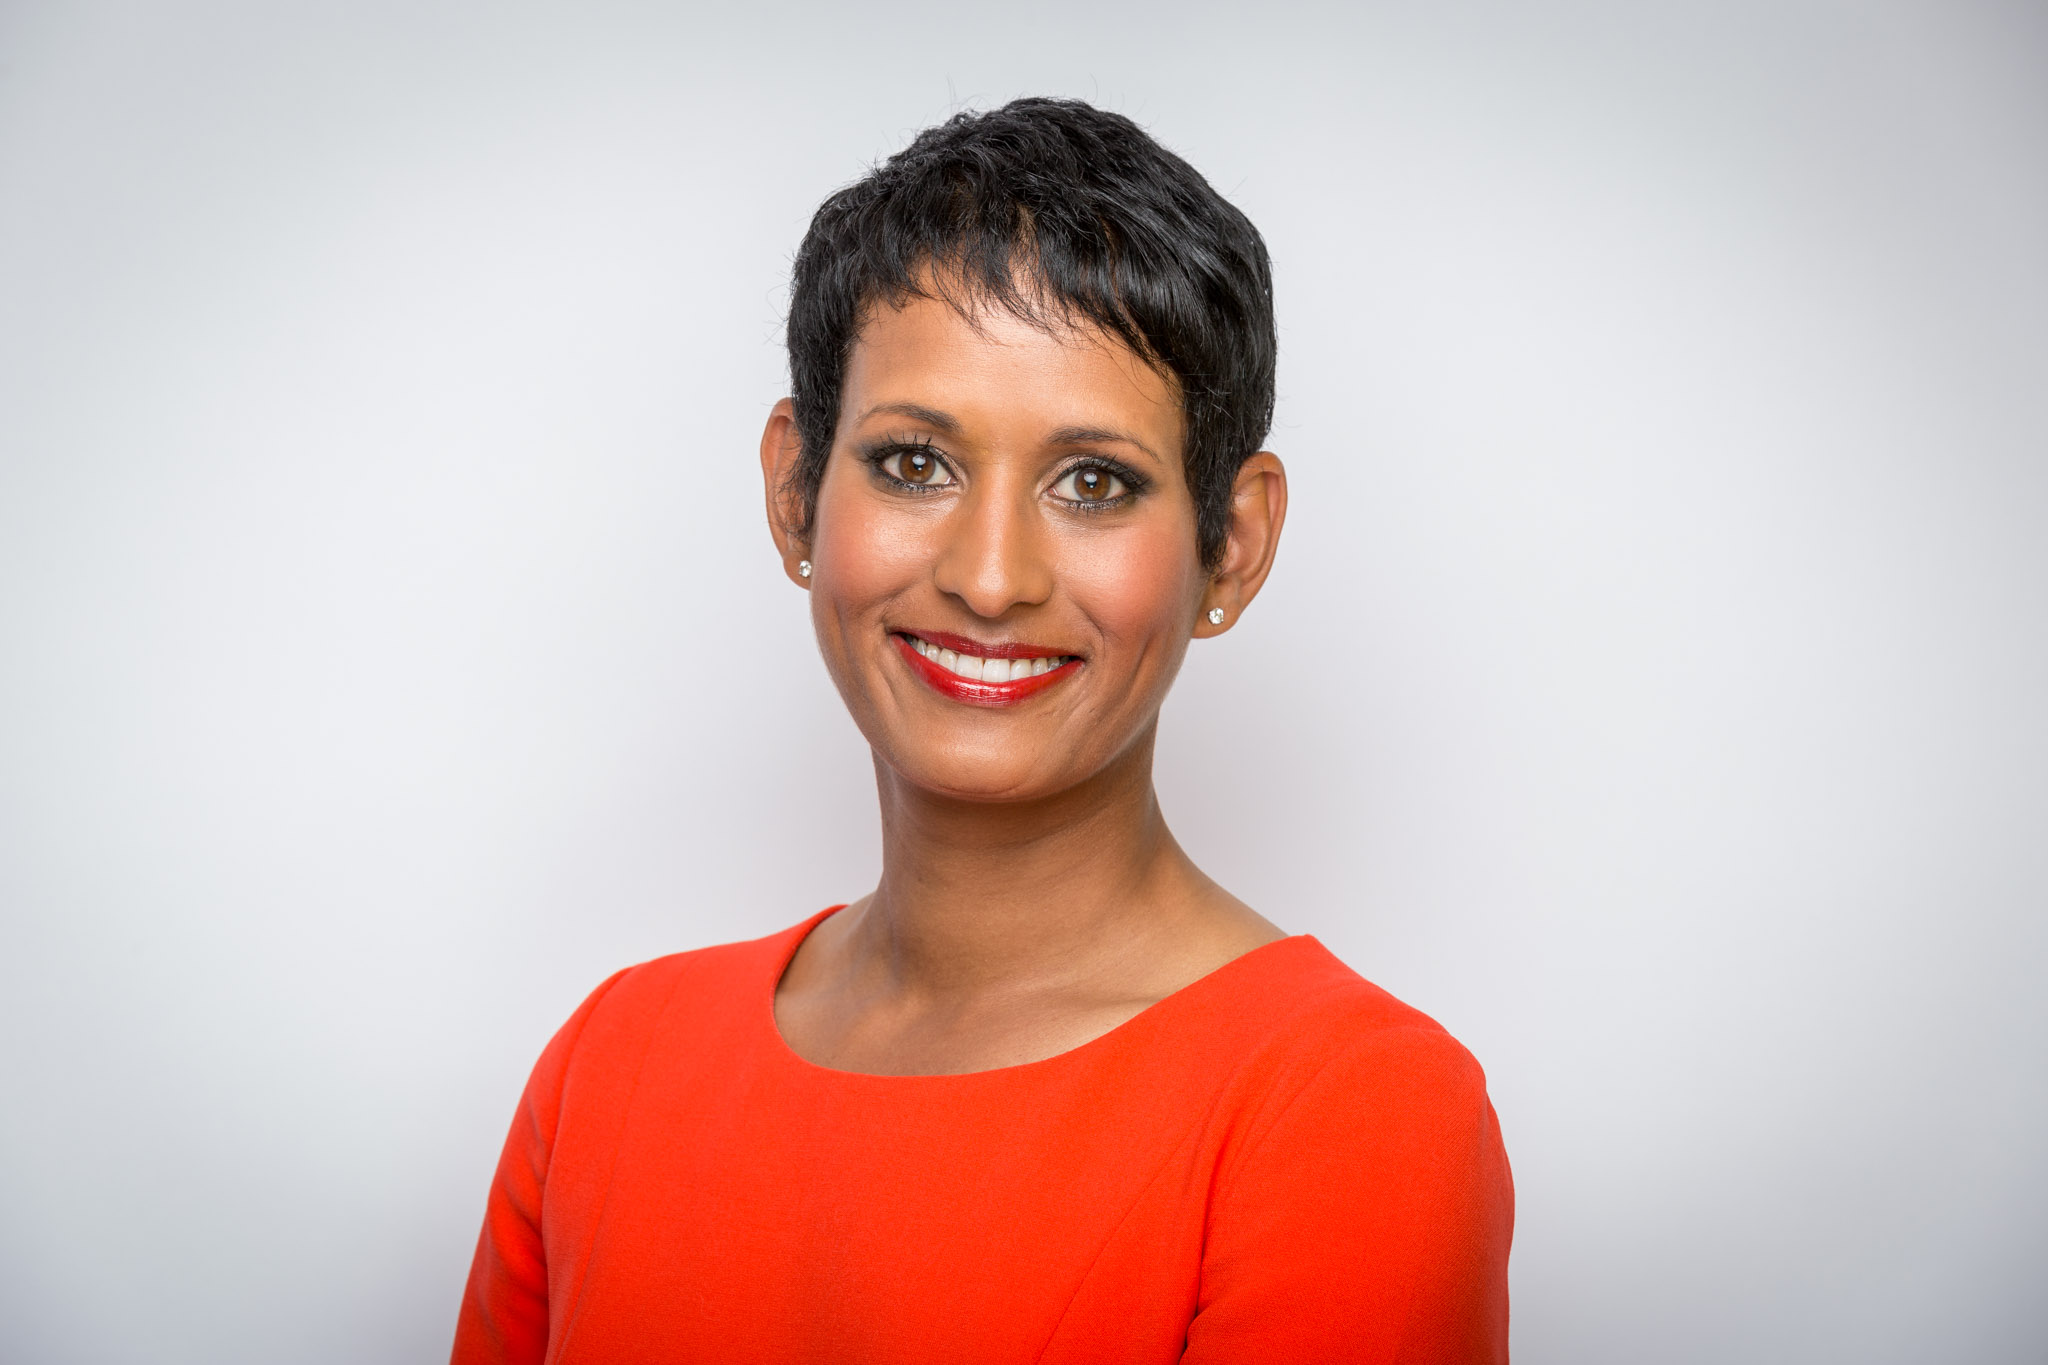 Naga Munchetty slammed US president Donald Trump for his remarks on four non-white politicians